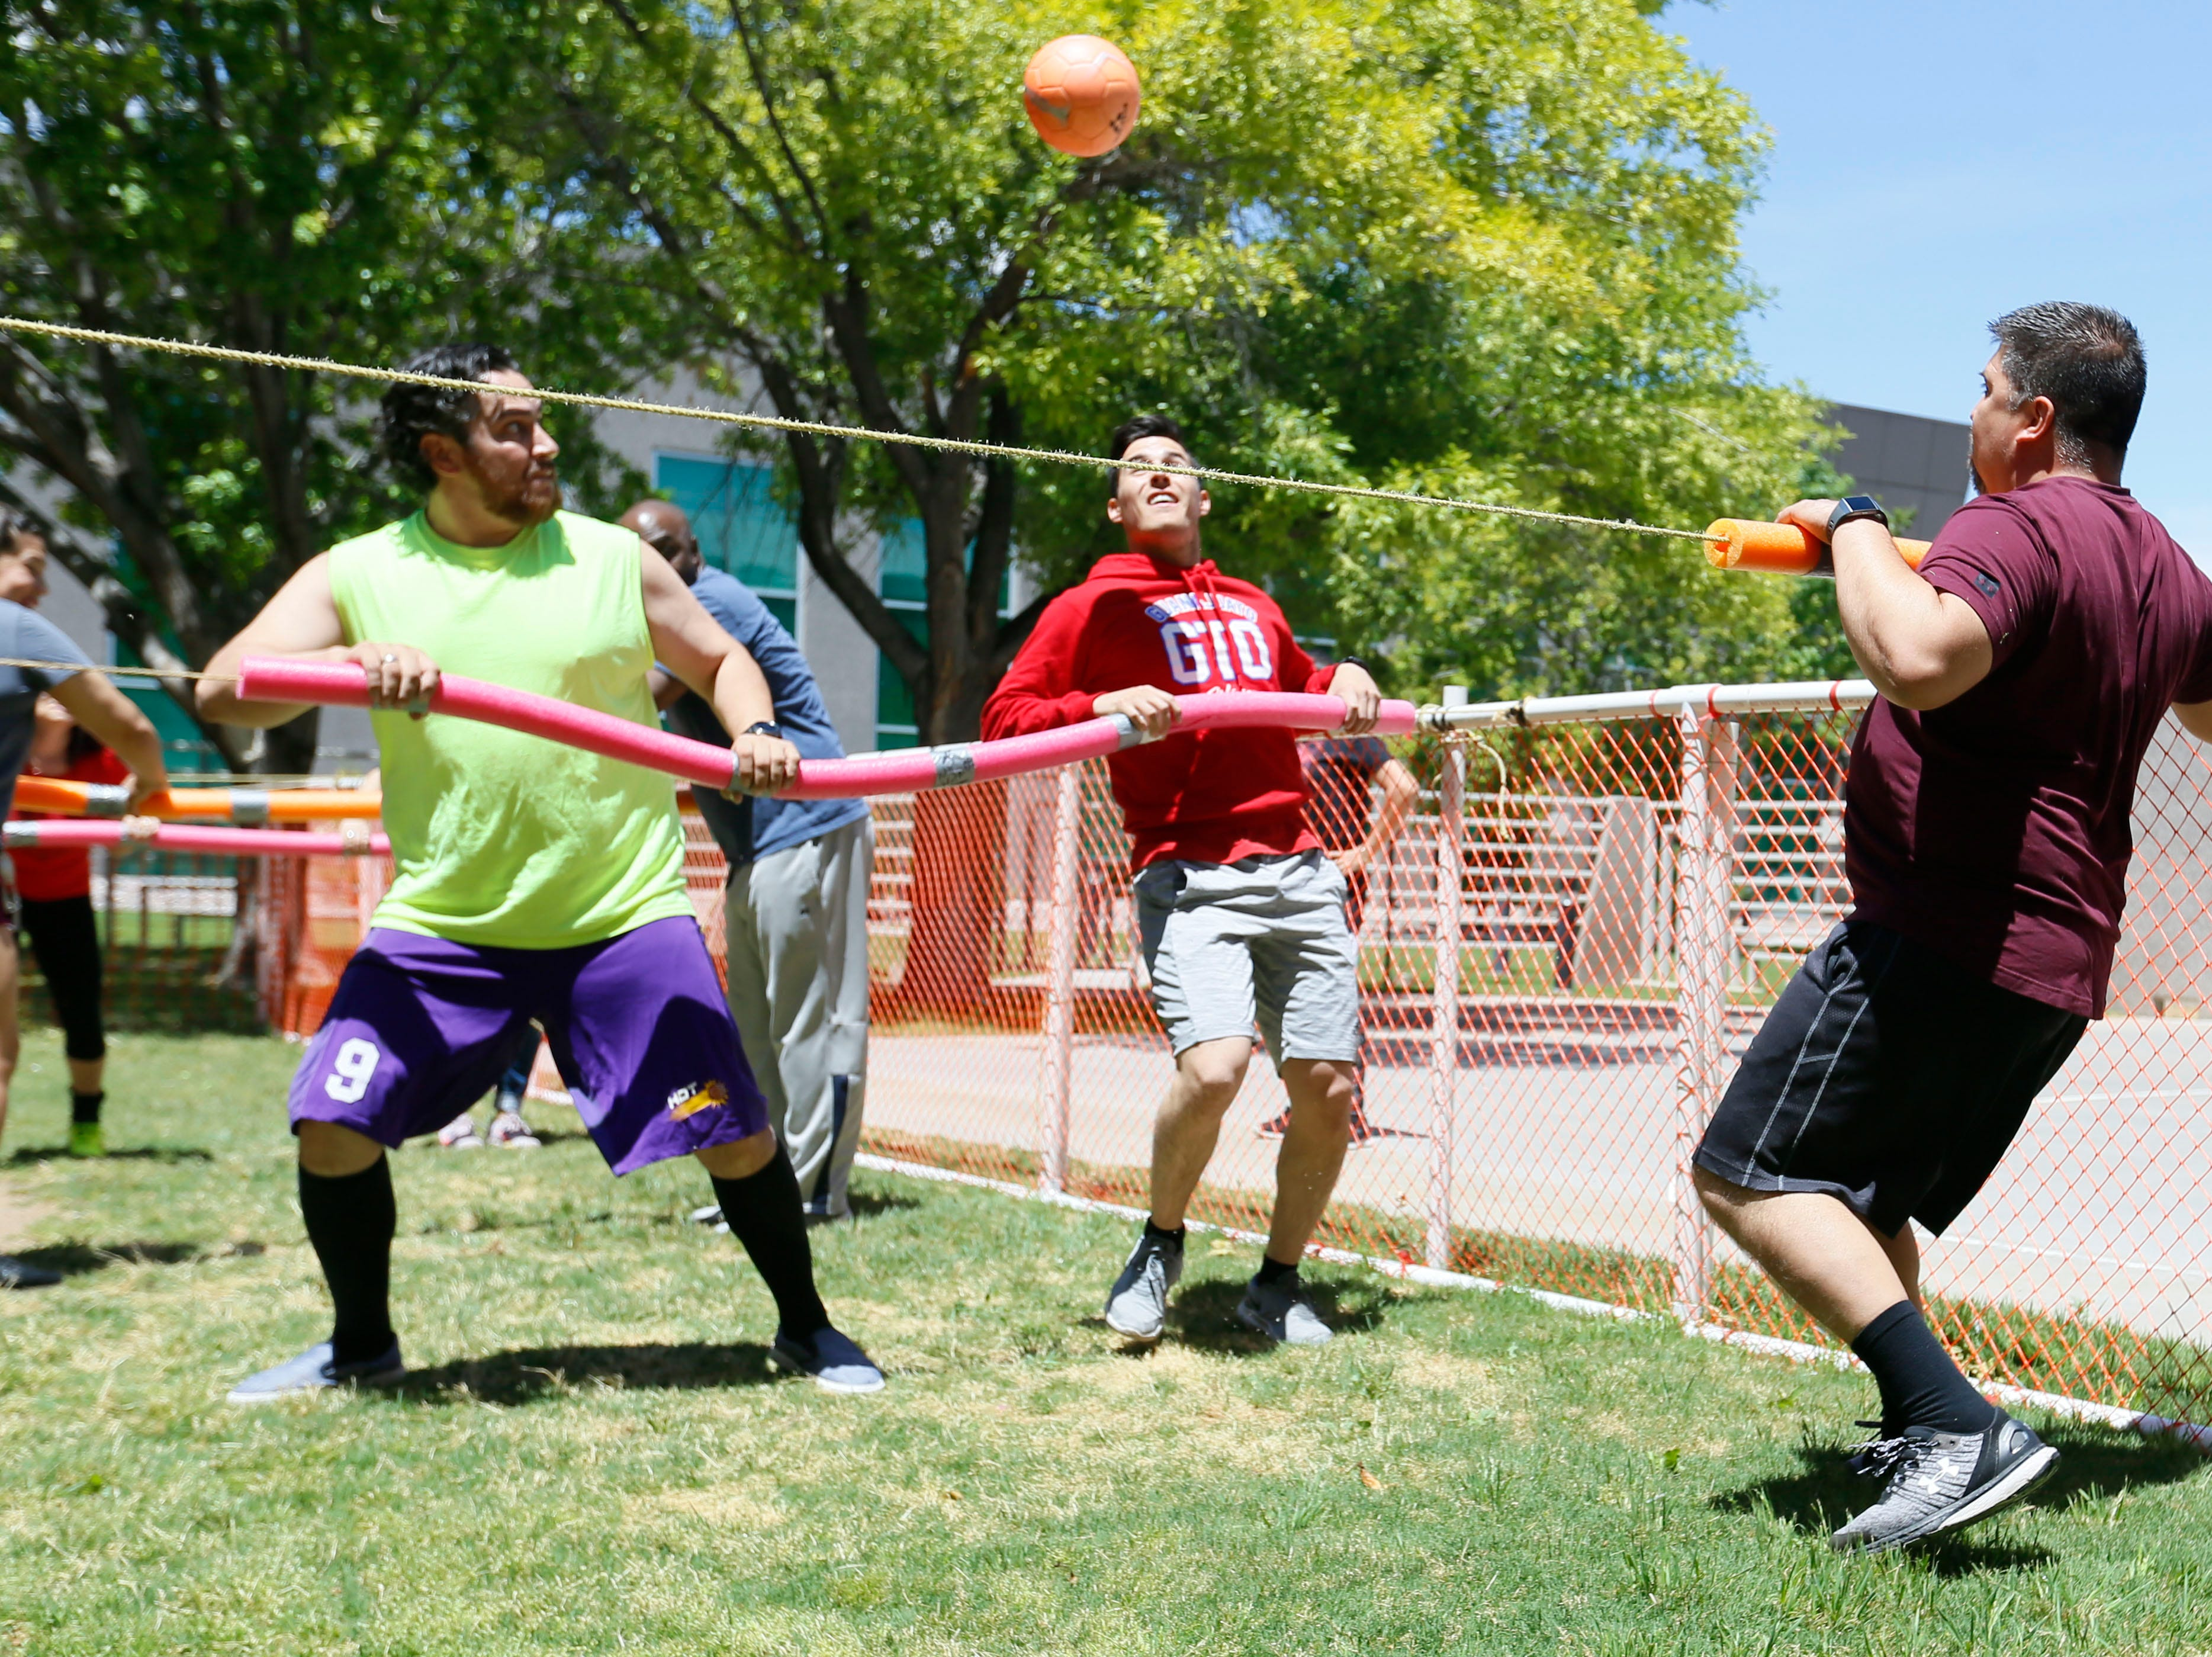 Helen of Troy senior tax accounting Jesus Villarreal, left, and tax staff accountant Roberto Valverde, right, attempt to score a goal against trade management analyst Larry Dominguez during human foosball tournament Monday, May 13, at Helen of Troy. The tournament benefited Junior Achievement of El Paso. Participating associates paid a $10 participation fee per player. Proceeds go towards Junior Achievement's Bowl-A-Thon.